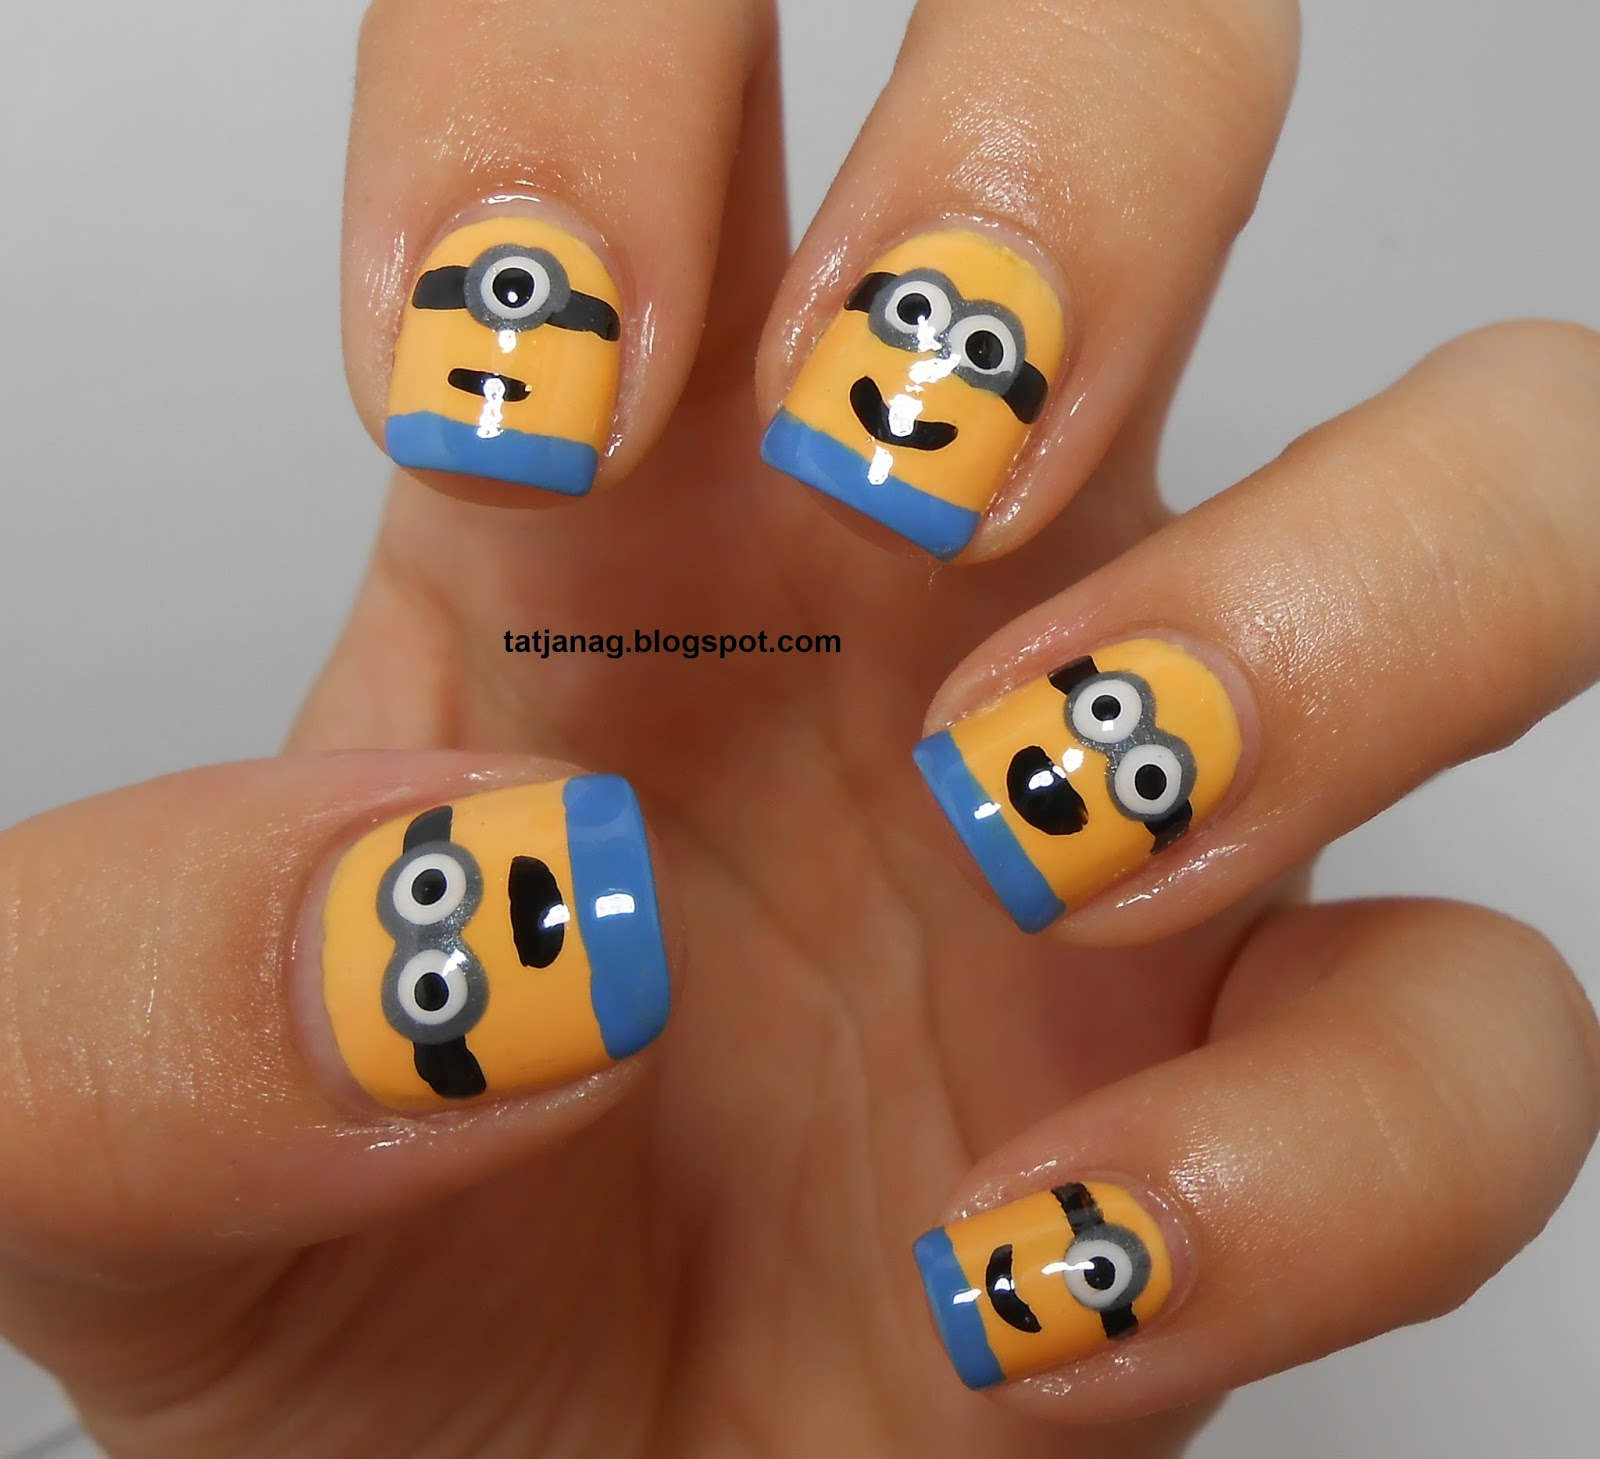 Nail designs minions beautify themselves with sweet nails minions nails tayas blog prinsesfo Choice Image